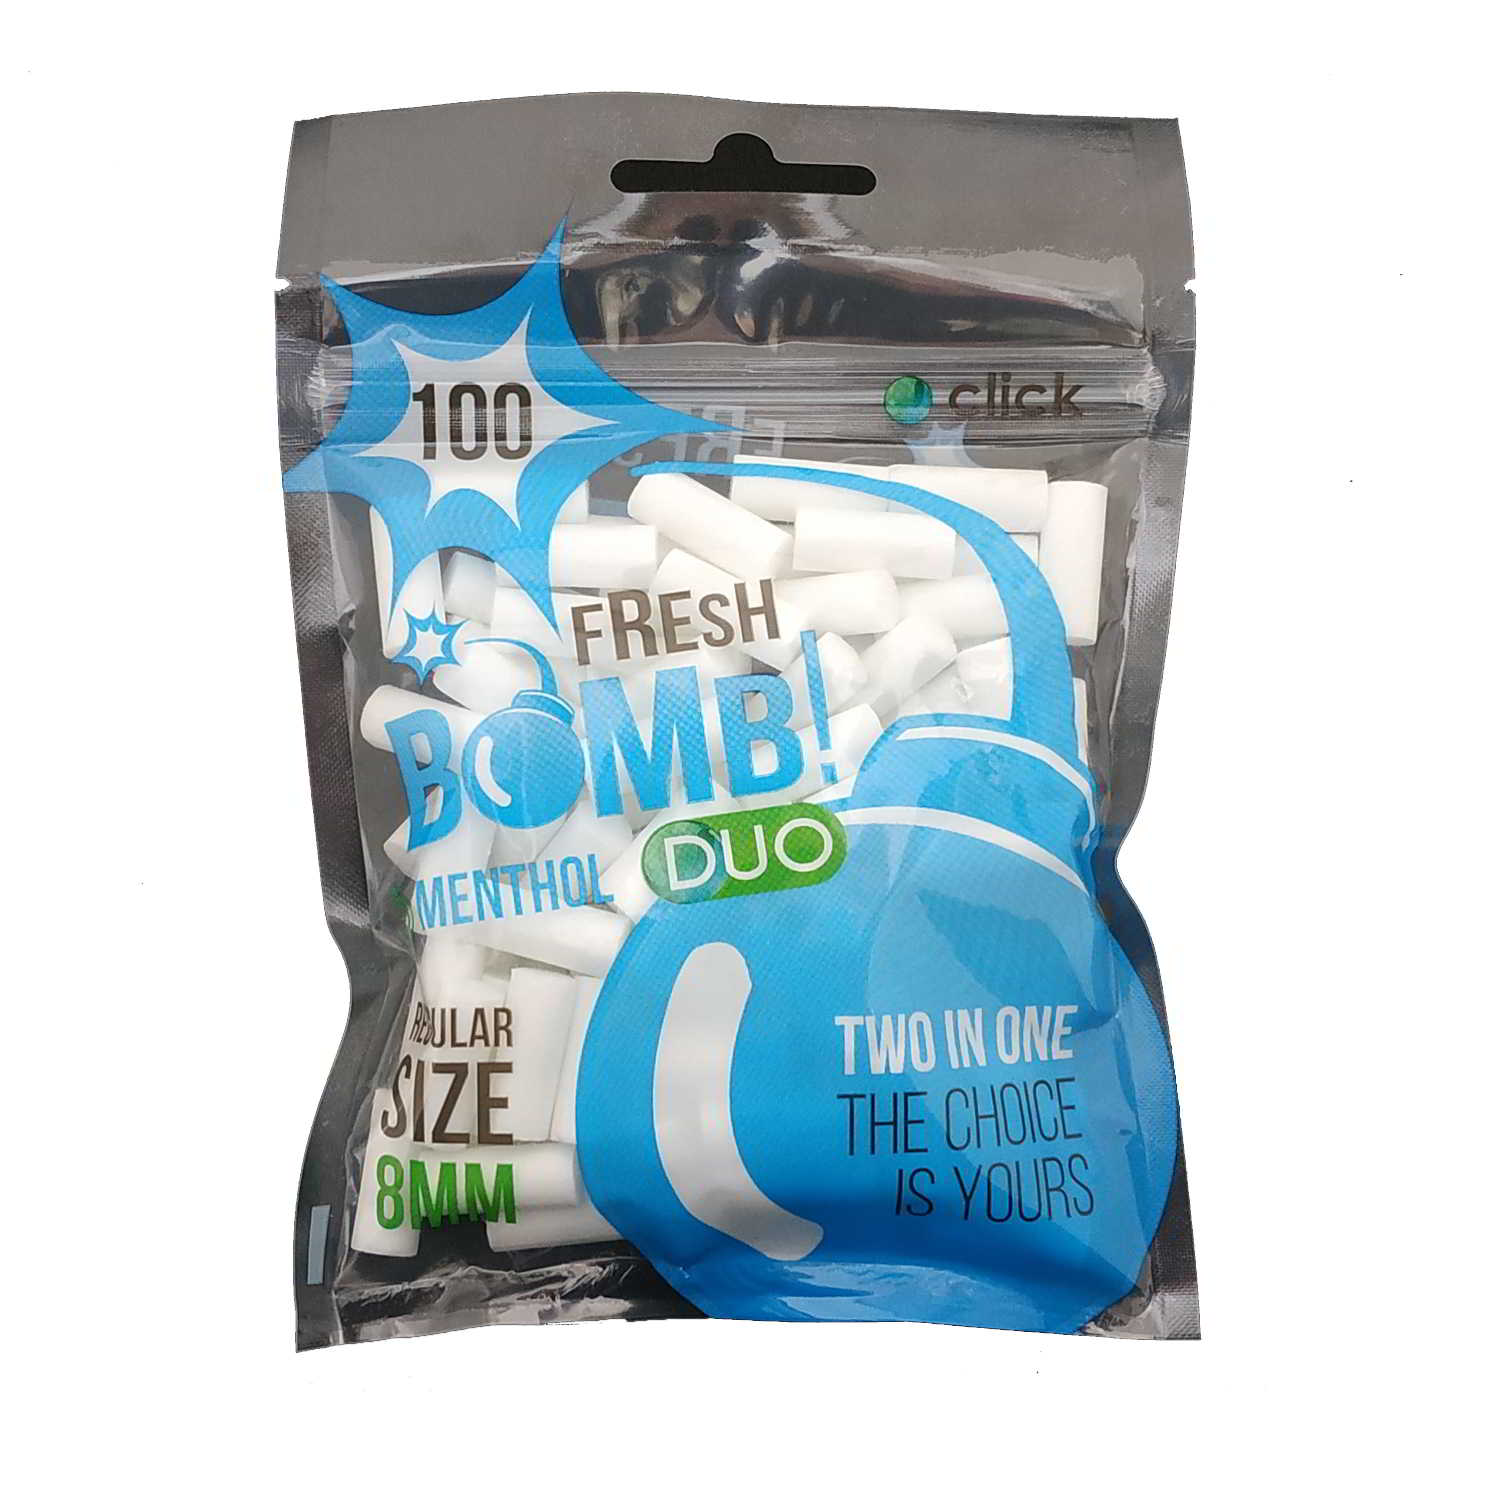 Filtros FRESH BOMB! Menthol Duo Regular 8 mm